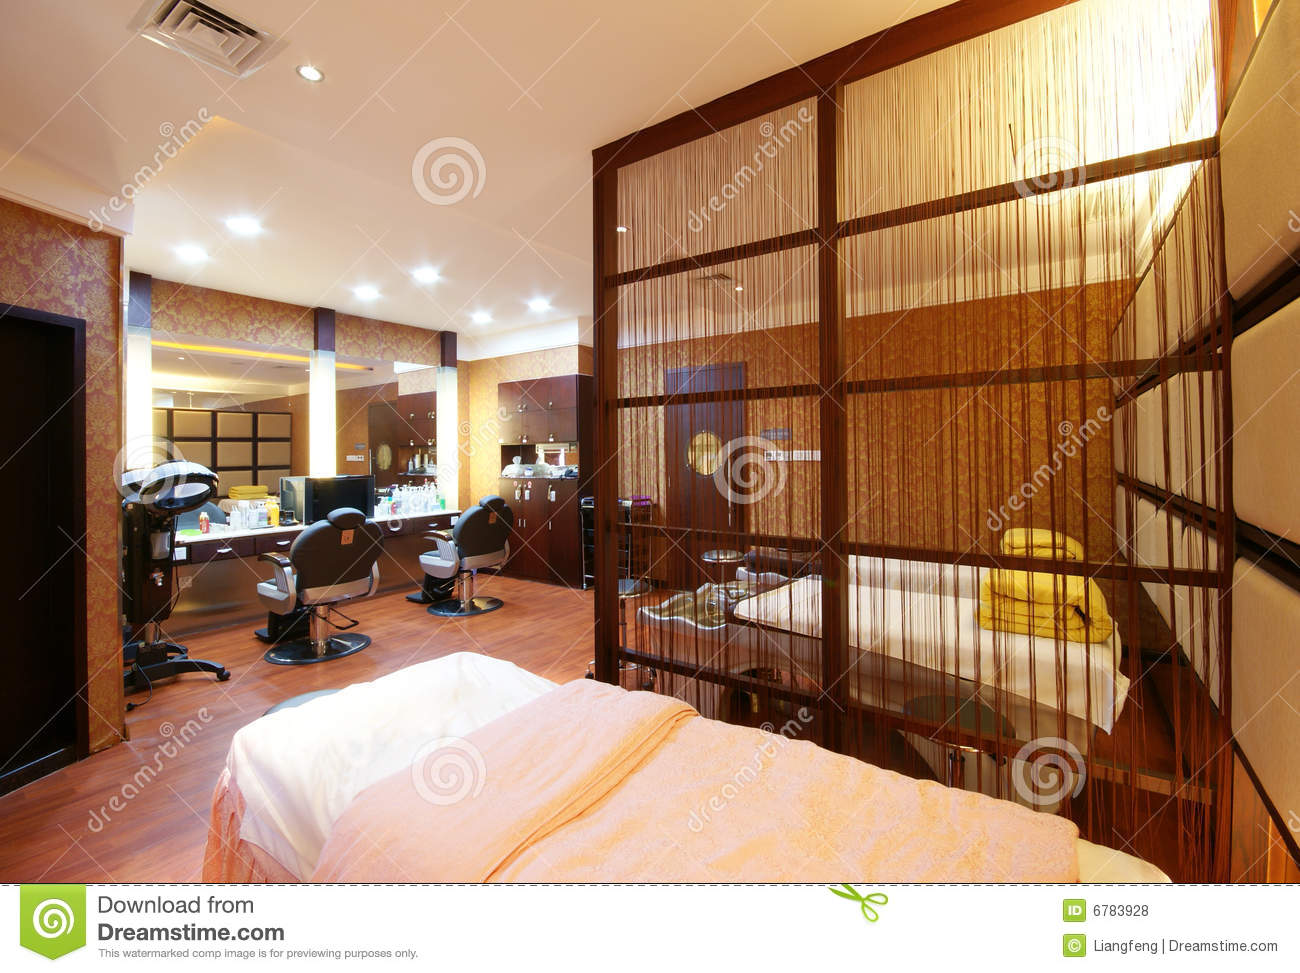 Beauty salon decoration stock photo image of activity - Decoration salon photo ...